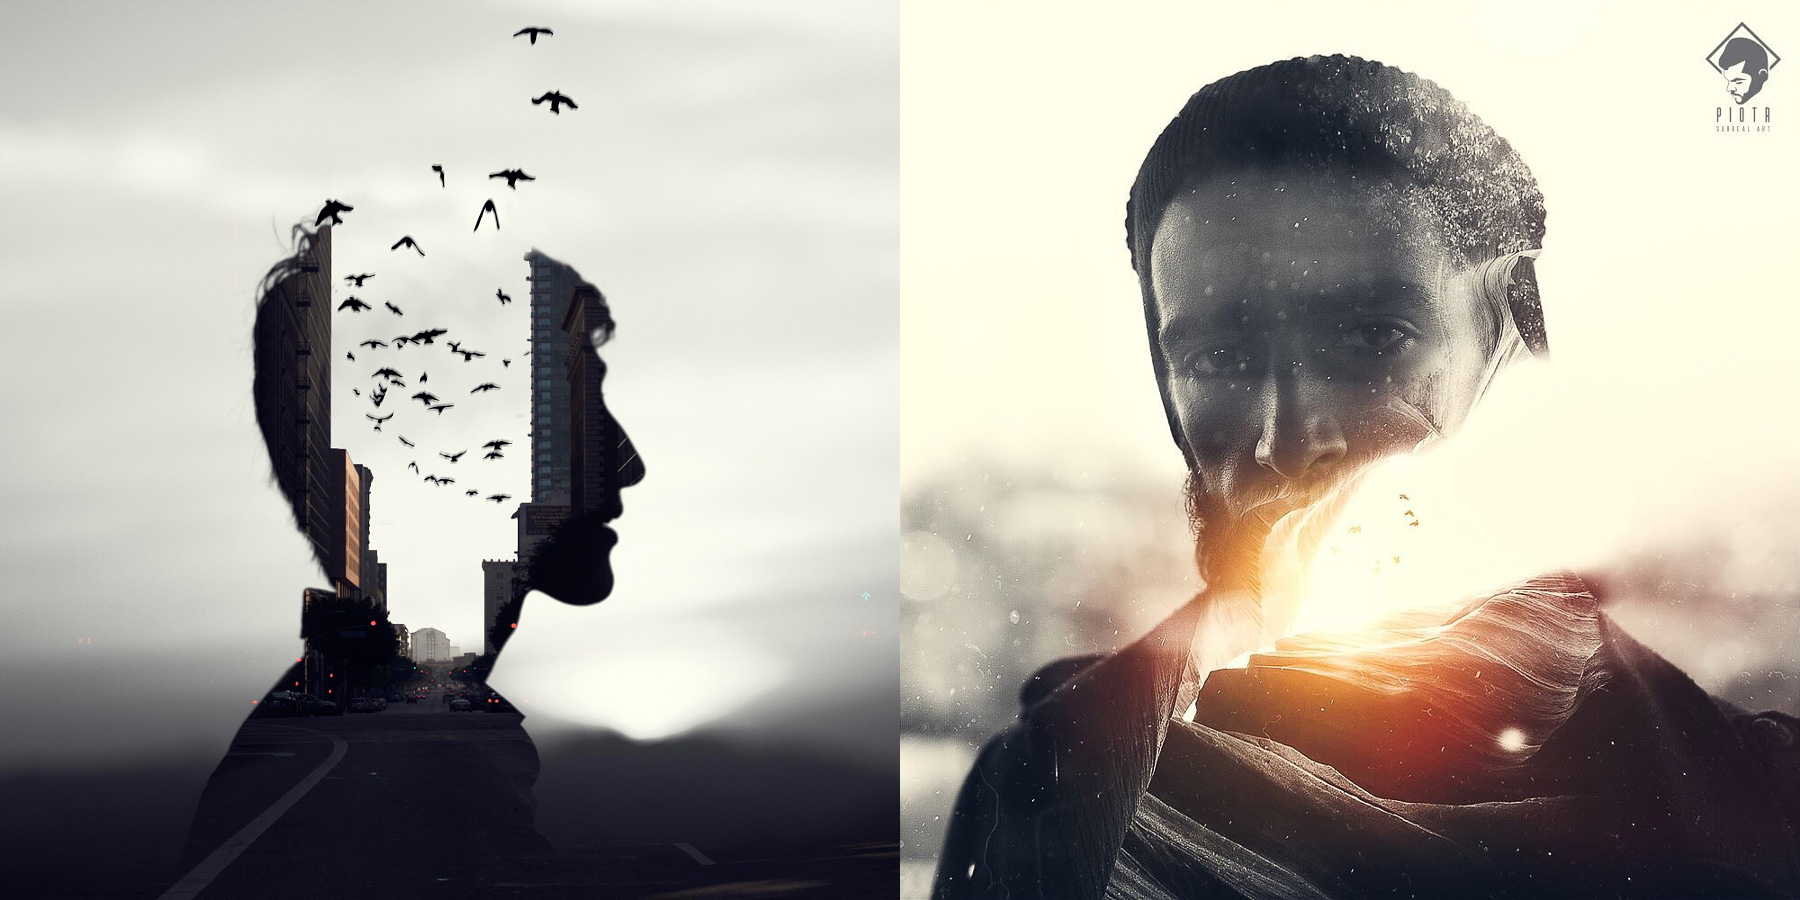 21 Awesome Multiple Exposures That'll Spark Your Creativity